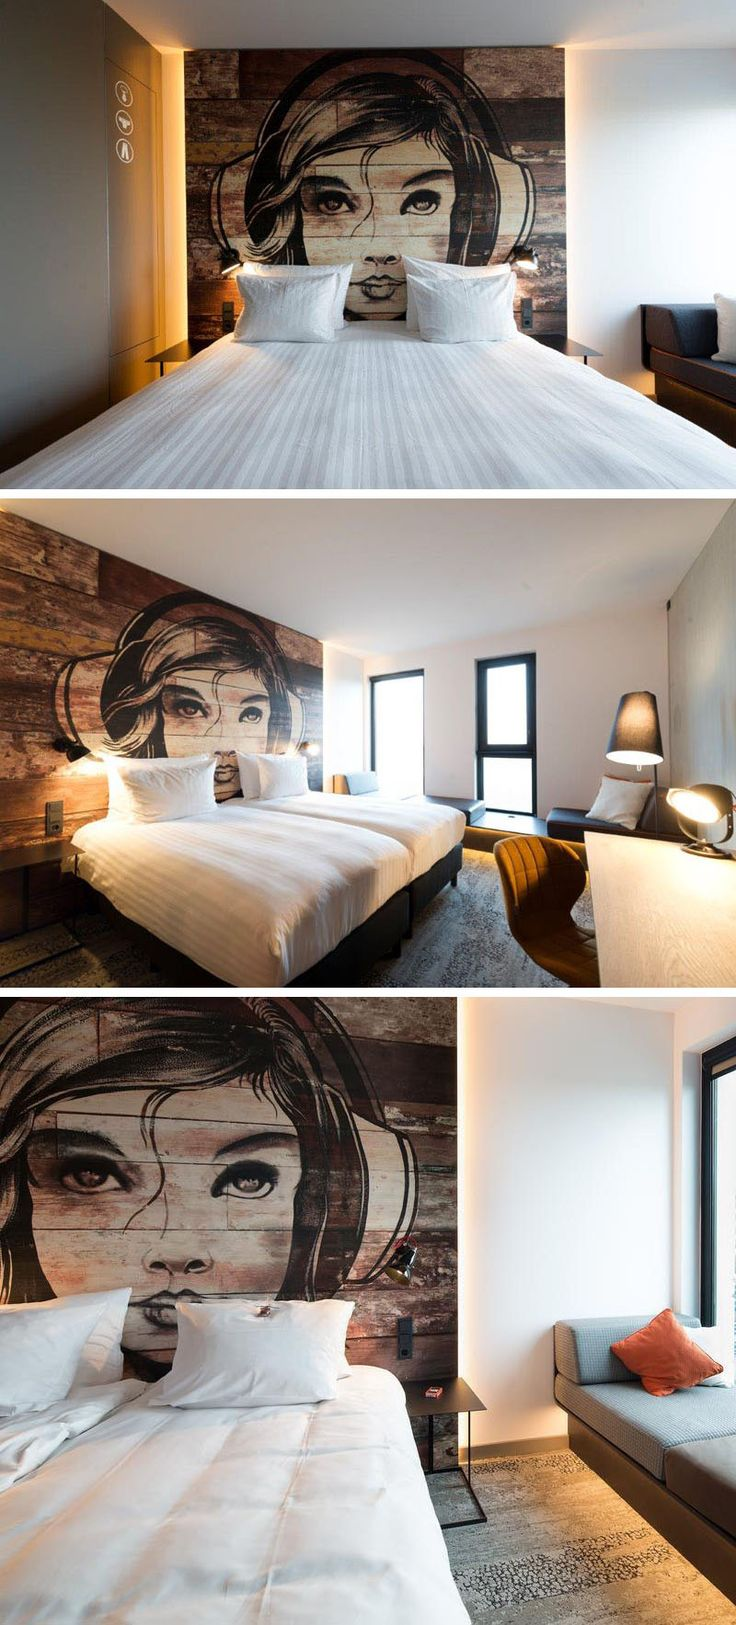 This modern bedroom has a mural painted of a girl on a headboard made from reclaimed wood